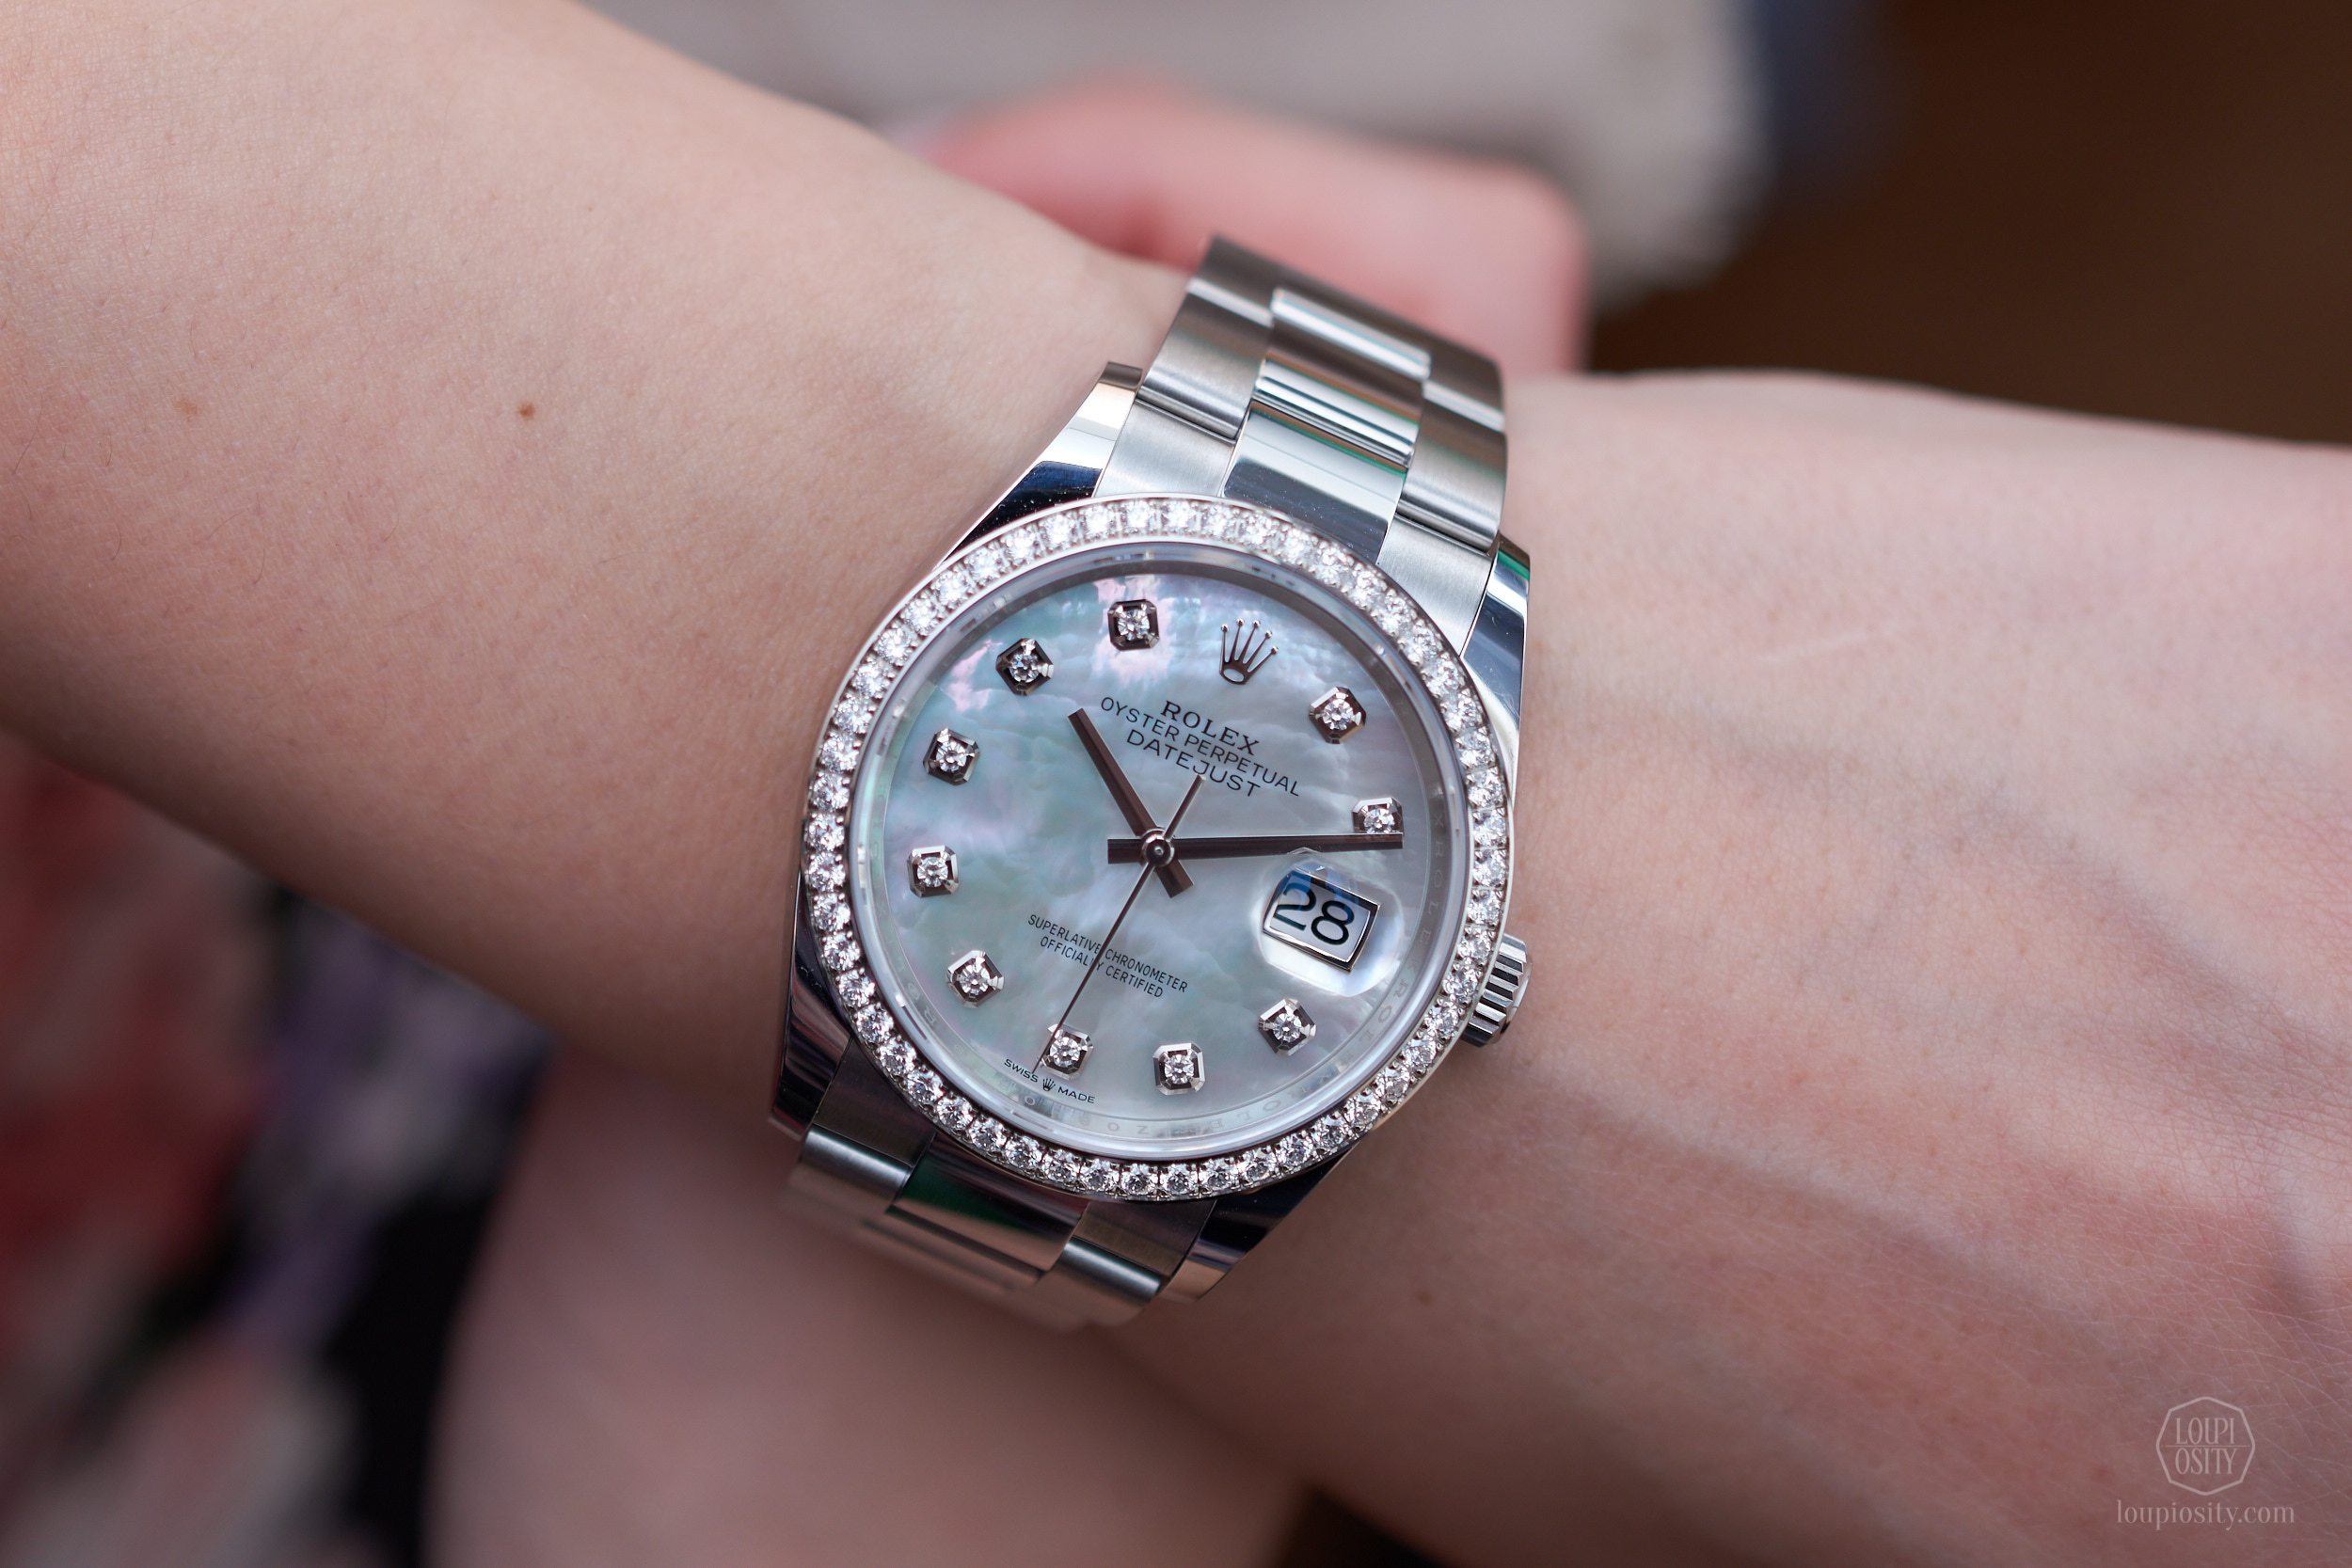 Rolex Datejust 36 - Rolesor Oystersteel and white gold with mother-of-pearl dial